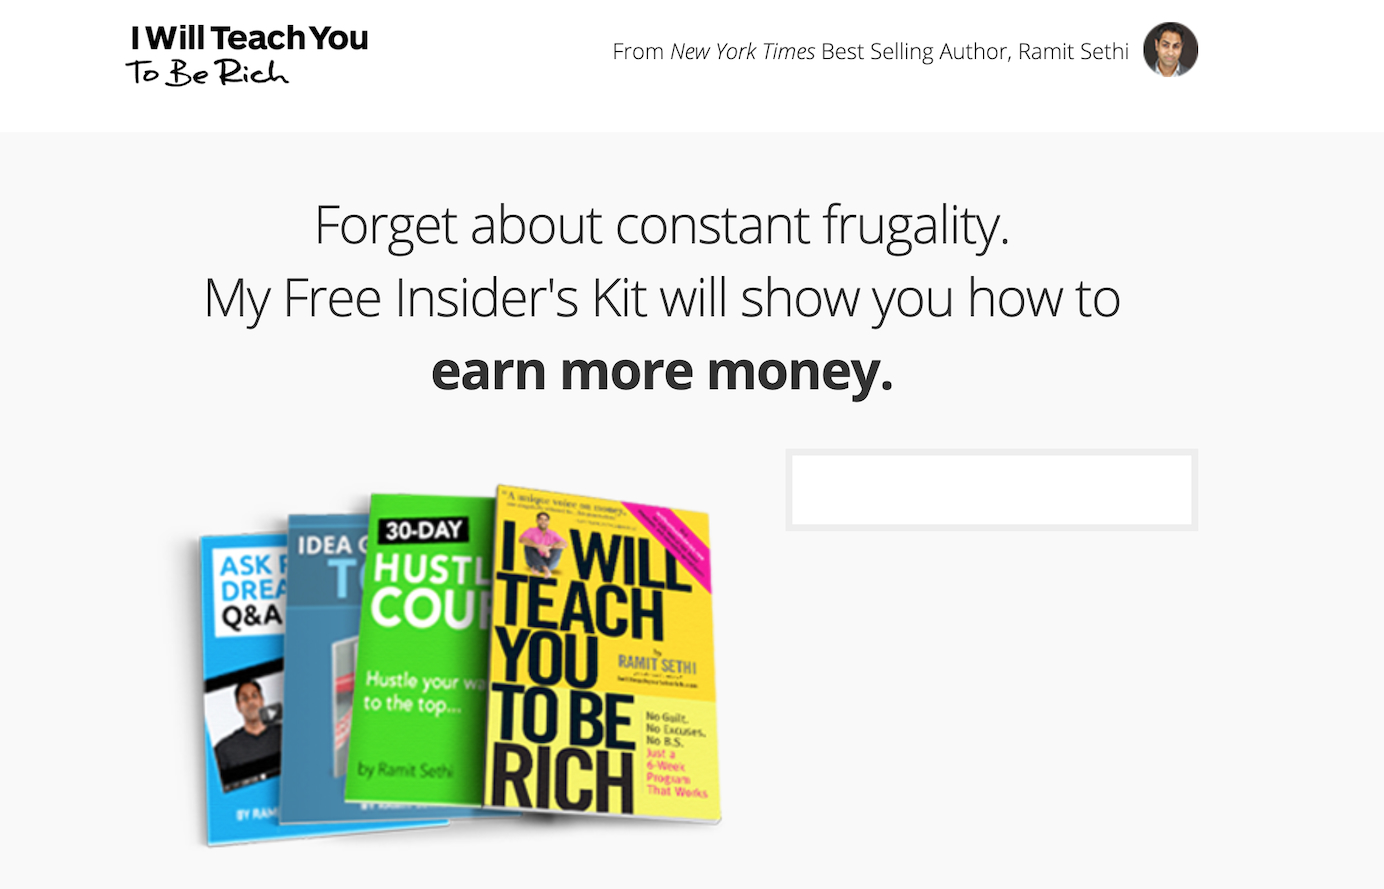 Ramit Sethi of I Teach You to Be Rich encourages sign-ups with an Insider Kit